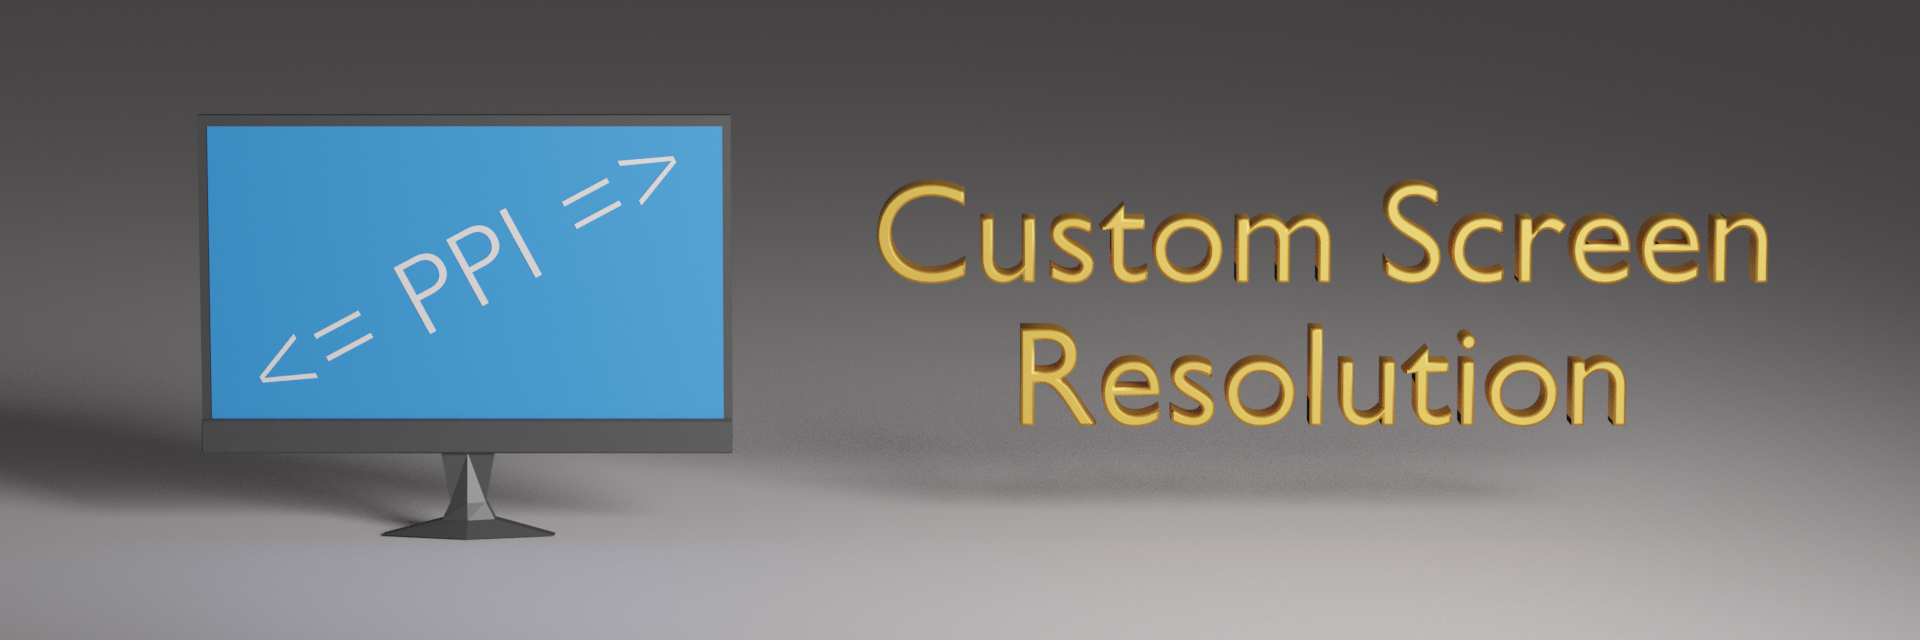 Custom Screen Resolution banner